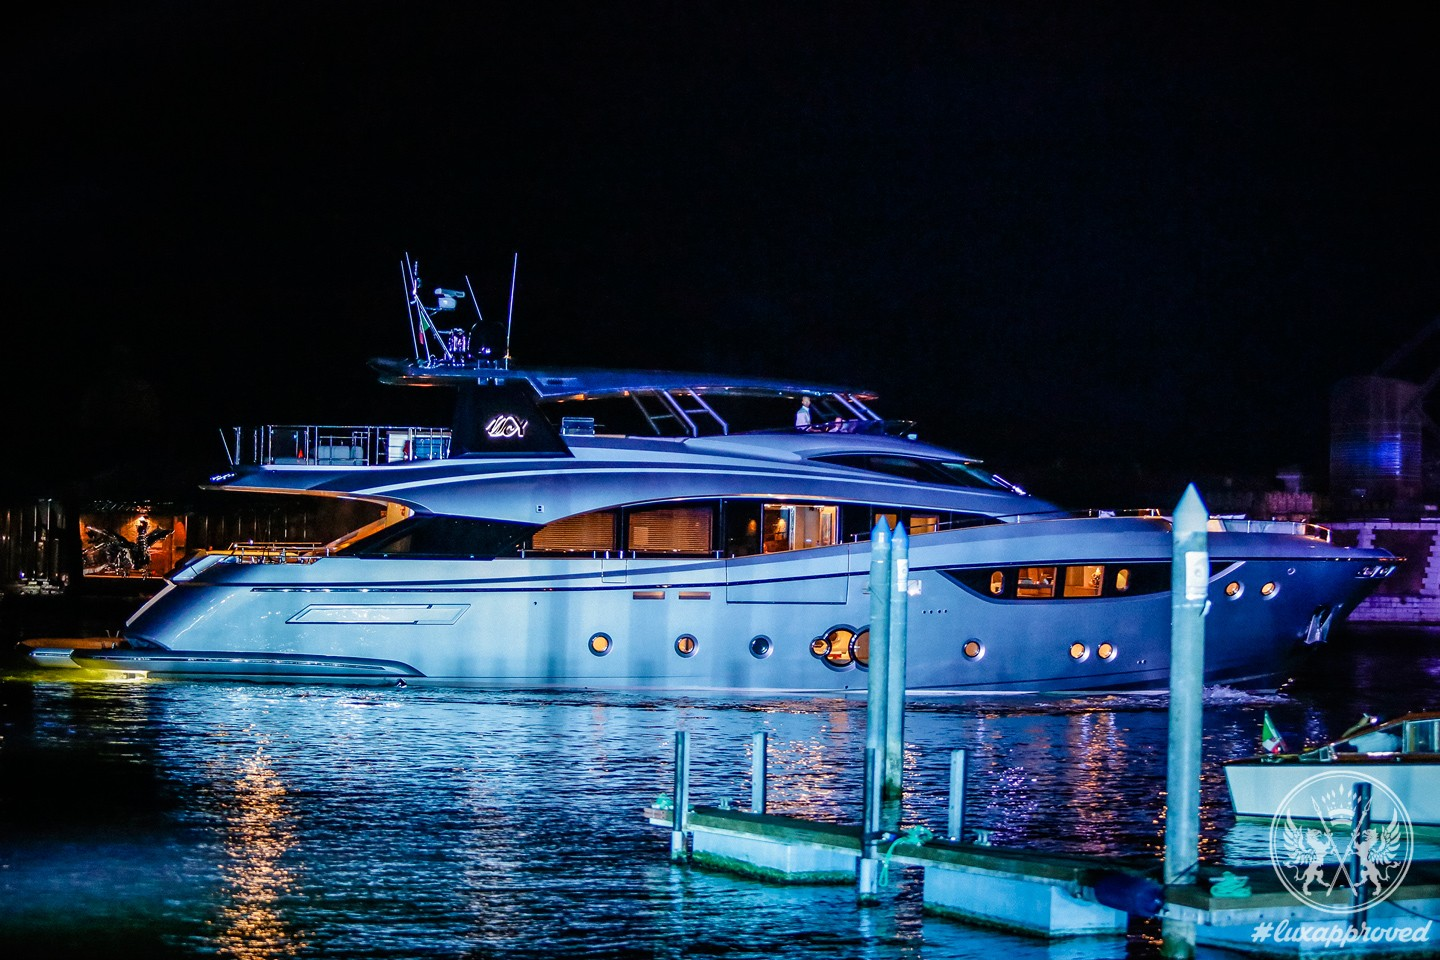 MCY 105 Monte Carlo Yachts